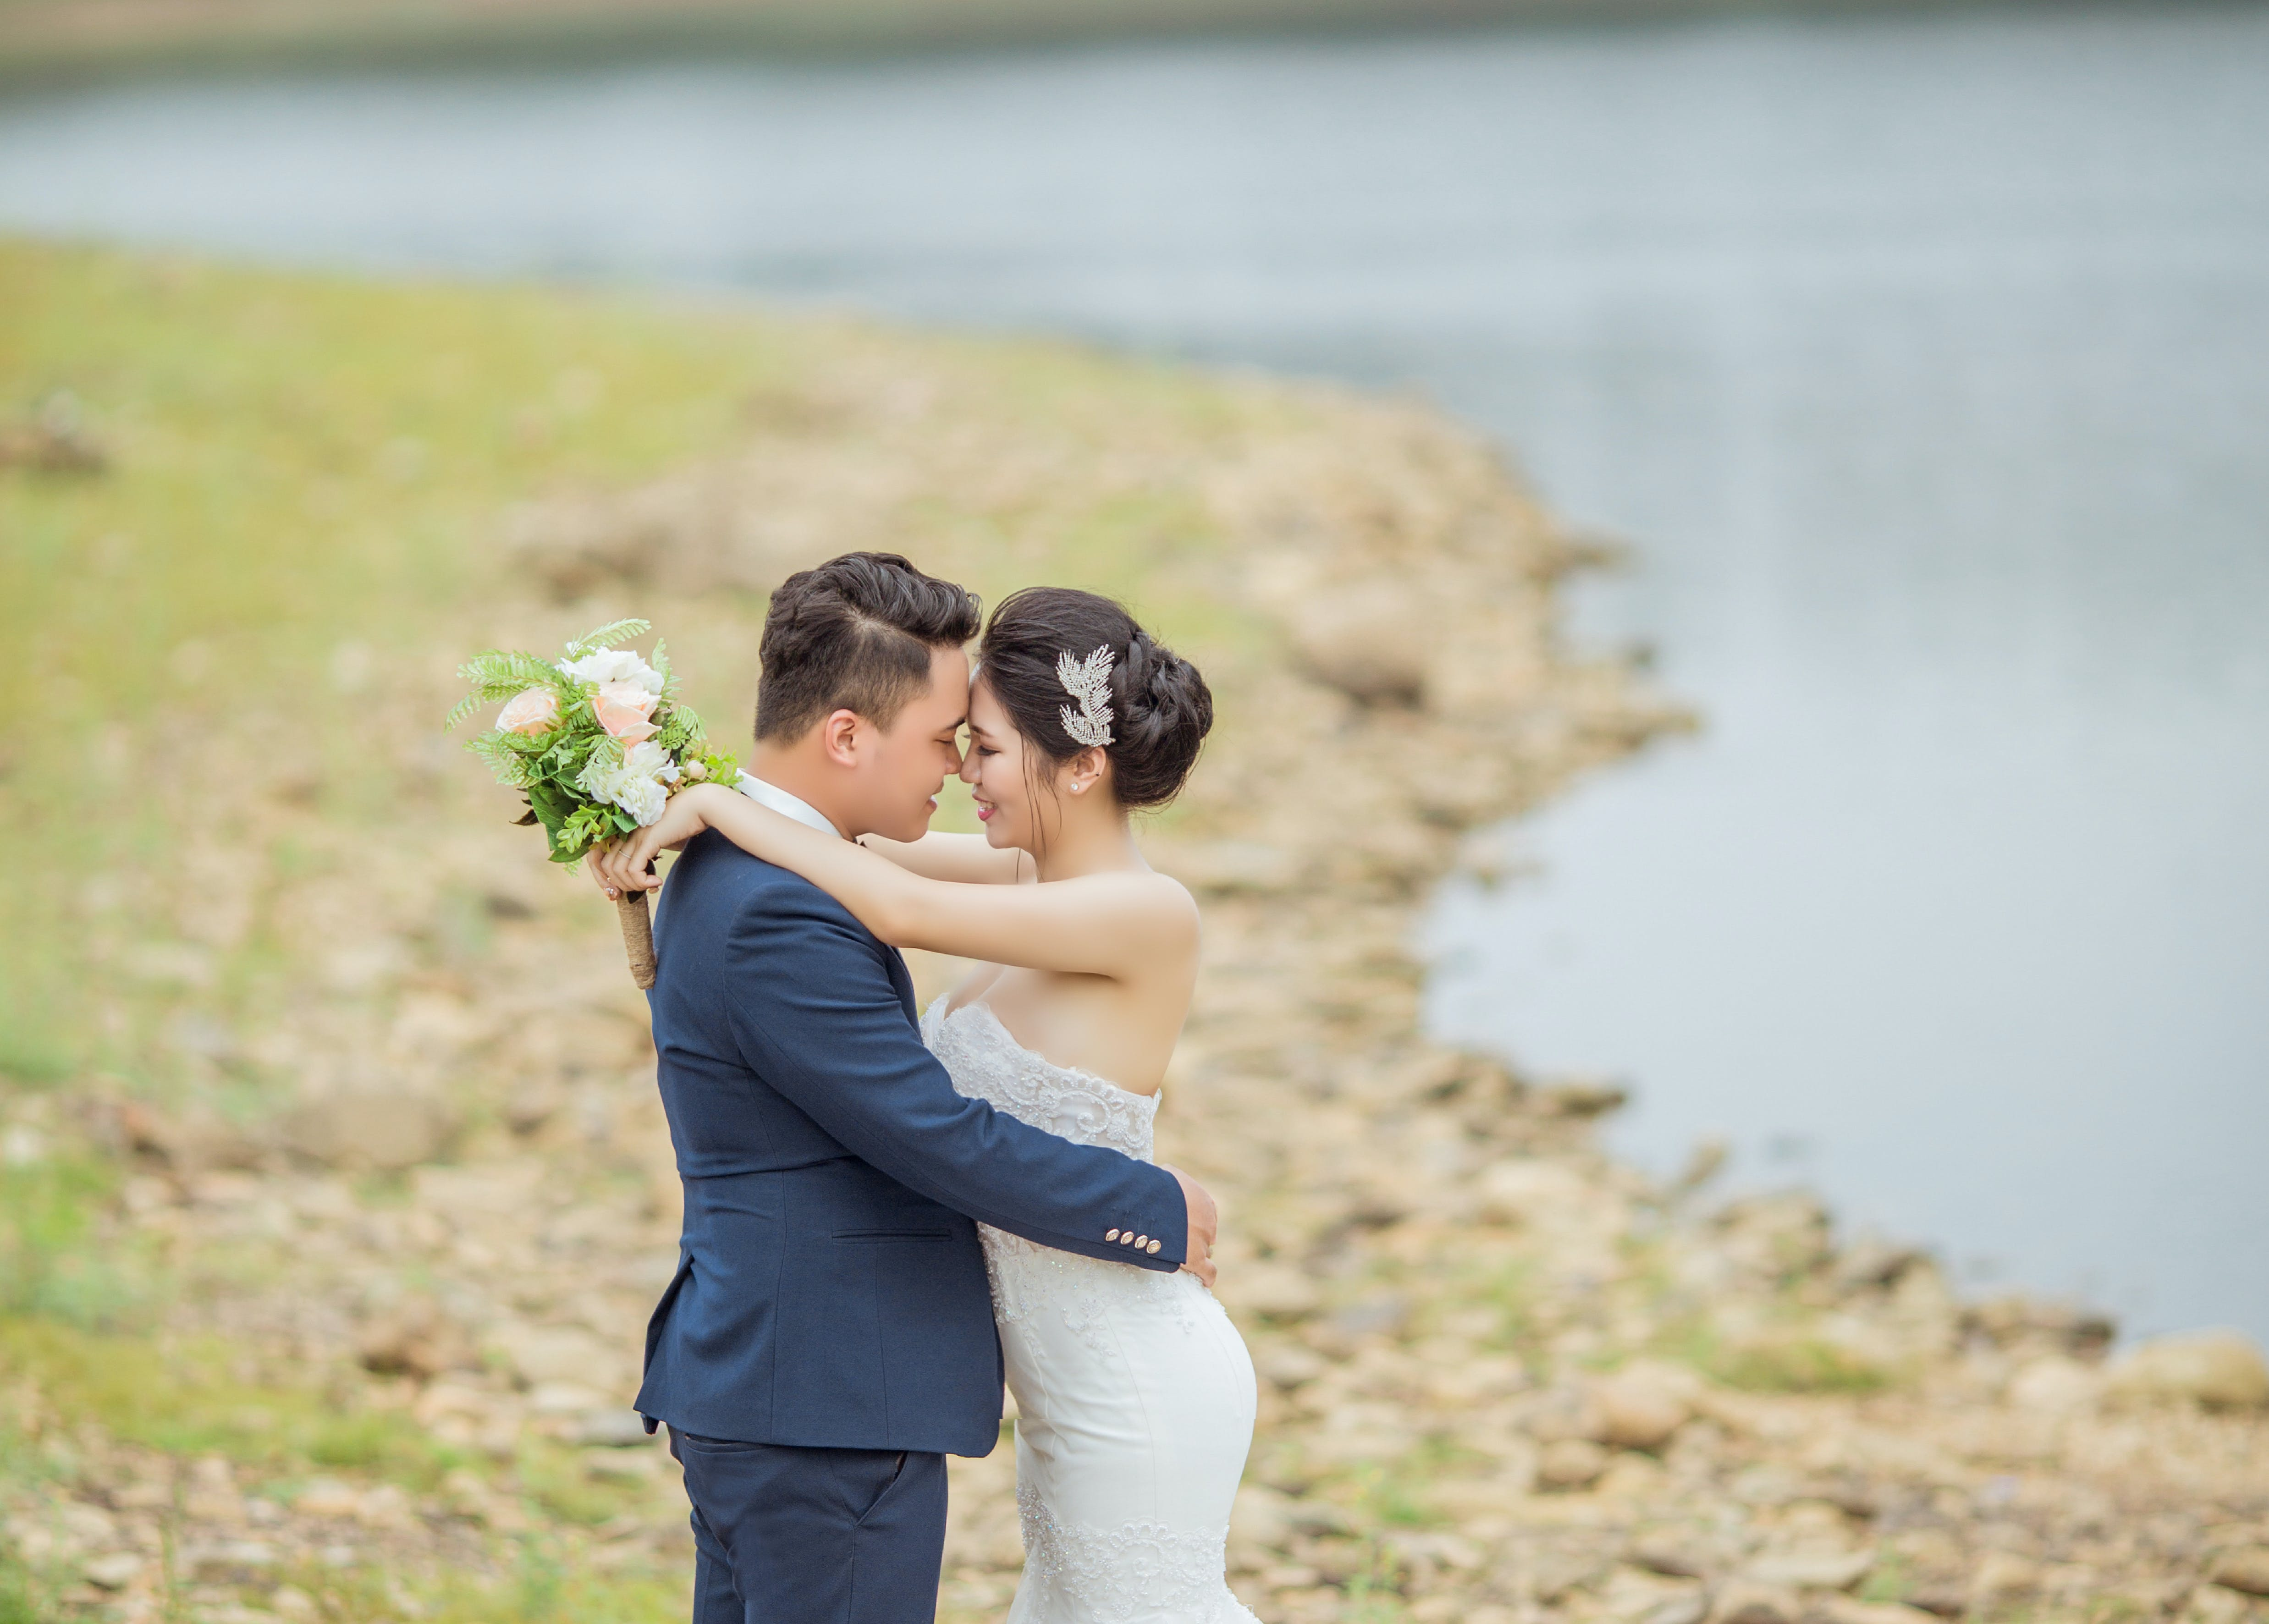 Newly Wed Coupe Standing Near Body of Water